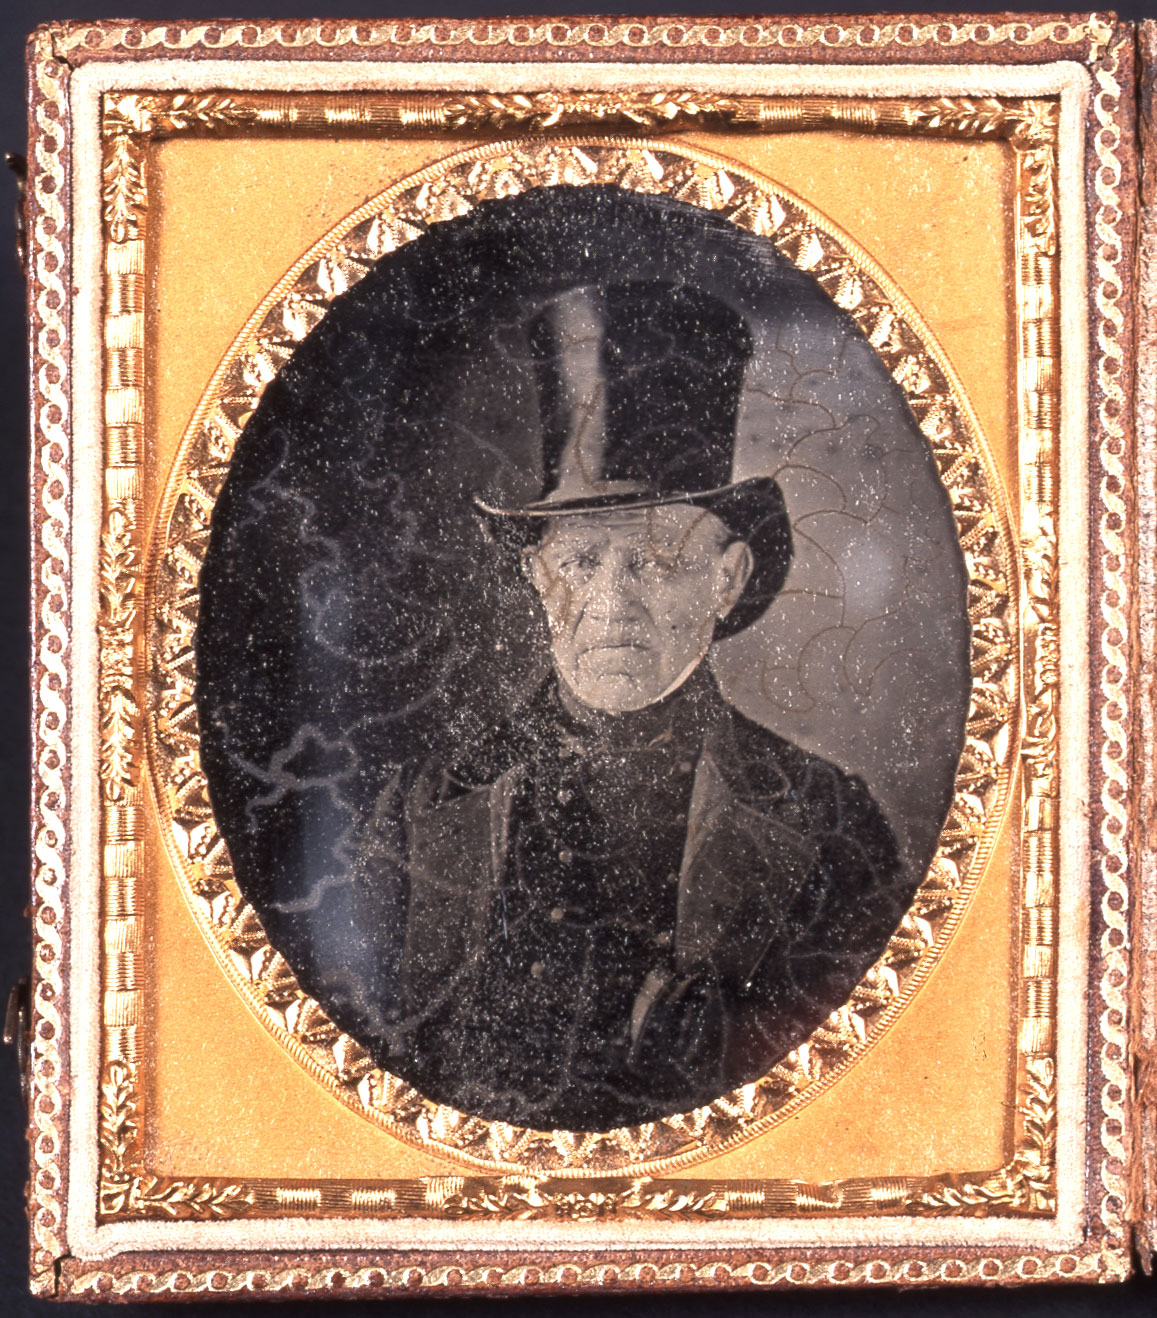 Judah Touro, ambrotype